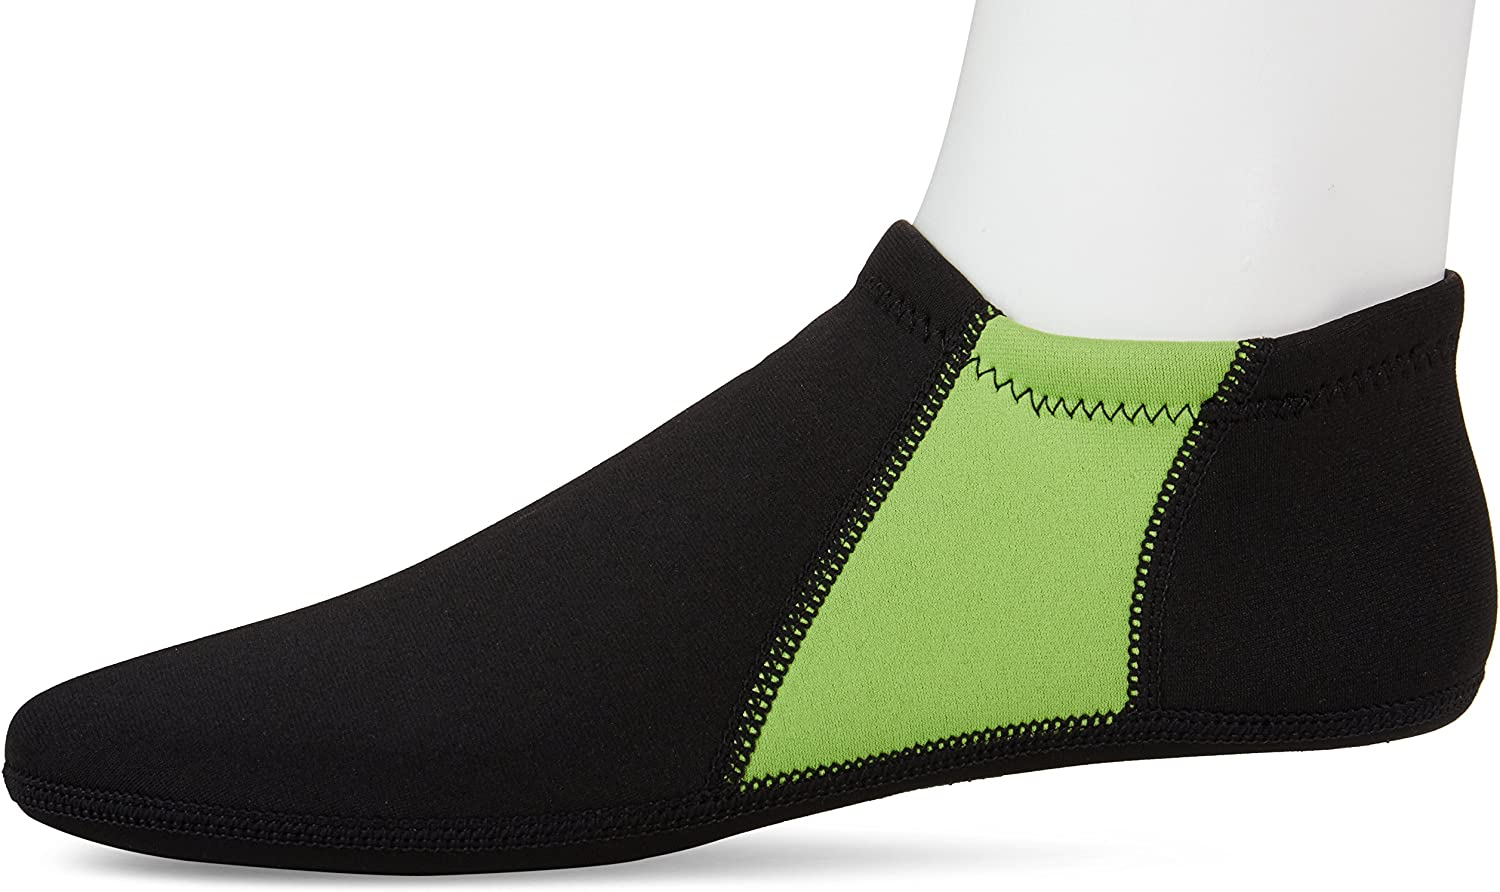 NuFoot Booties Men's Shoes, Best Foldable & Flexible Footwear, Fold and Go Travel Shoes, Yoga Socks, Indoor Shoes, Slippers, Black with Green Stripes, Extra Large